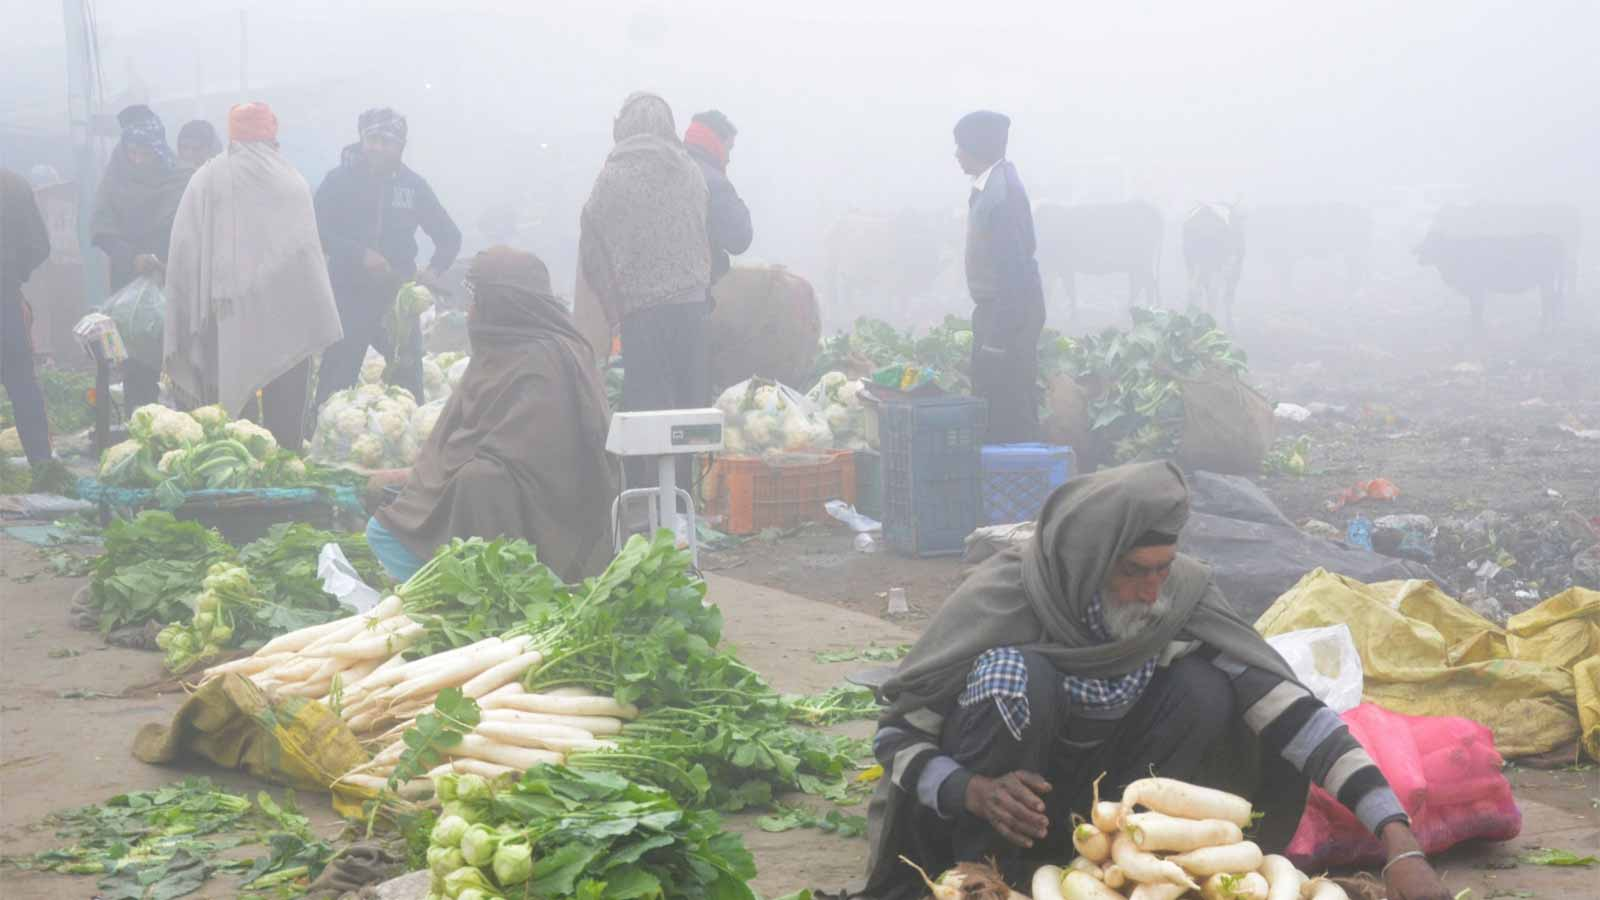 wpi-inflation-eases-to-1-22-in-december-as-food-prices-fall